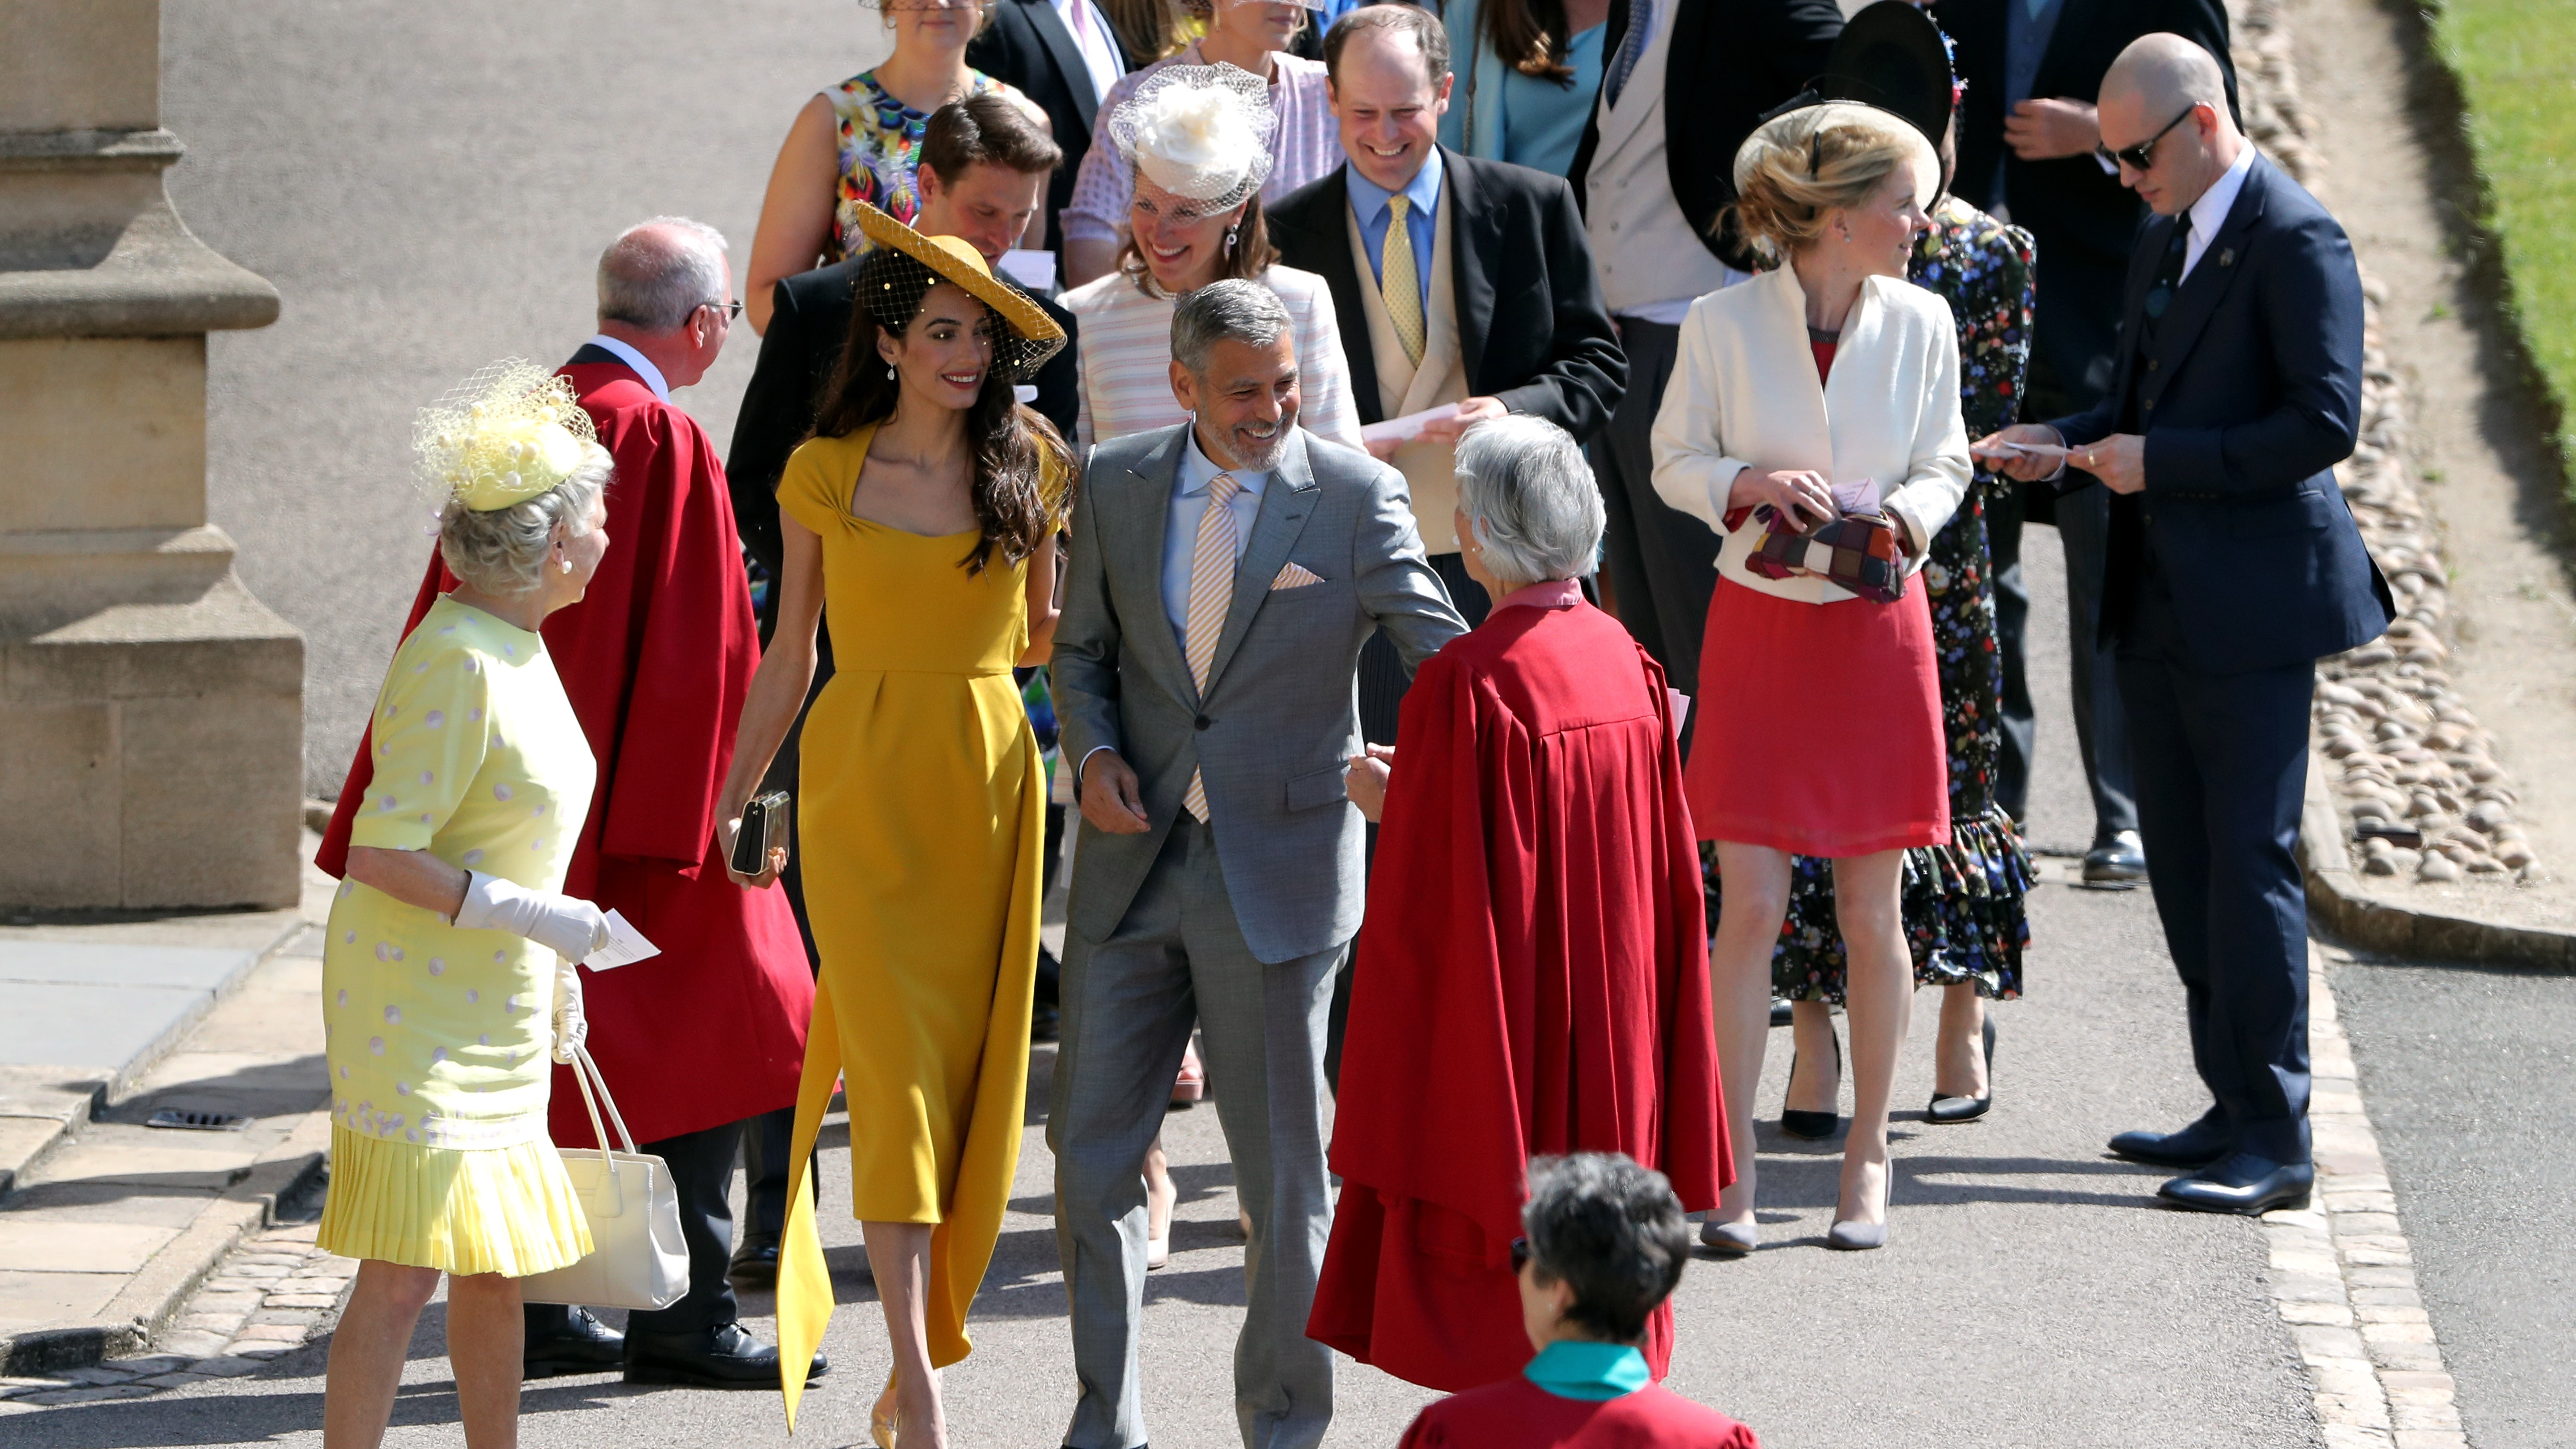 Oprah At Prince Harry Wedding.Stars Including George Clooney And Oprah Arrive For Wedding Of Harry